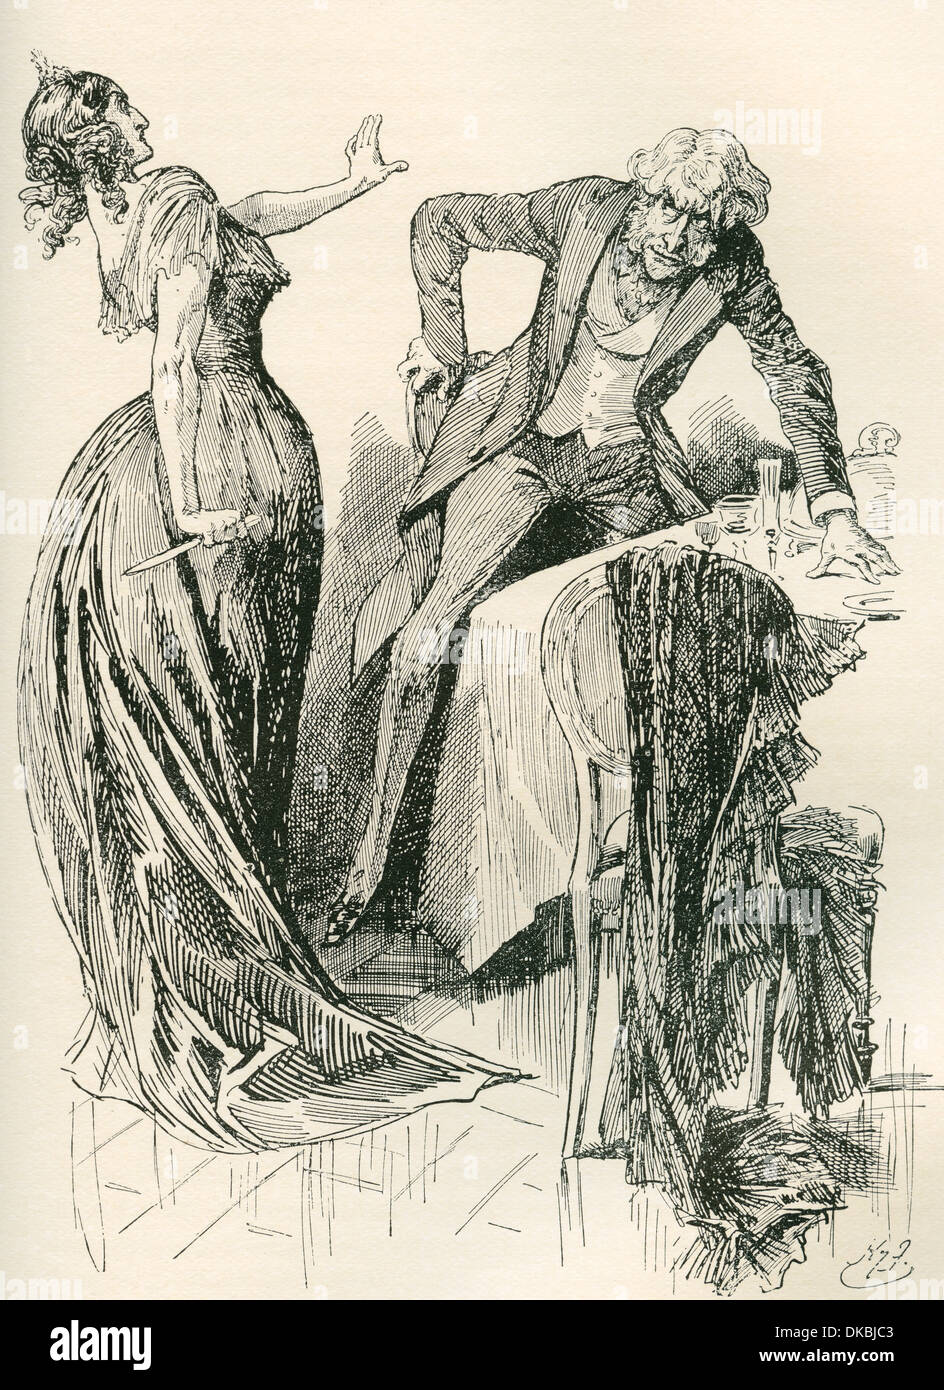 Edith and Mr. Carker. Illustration by Harry Furniss for the Charles Dickens novel Dombey and Son. - Stock Image